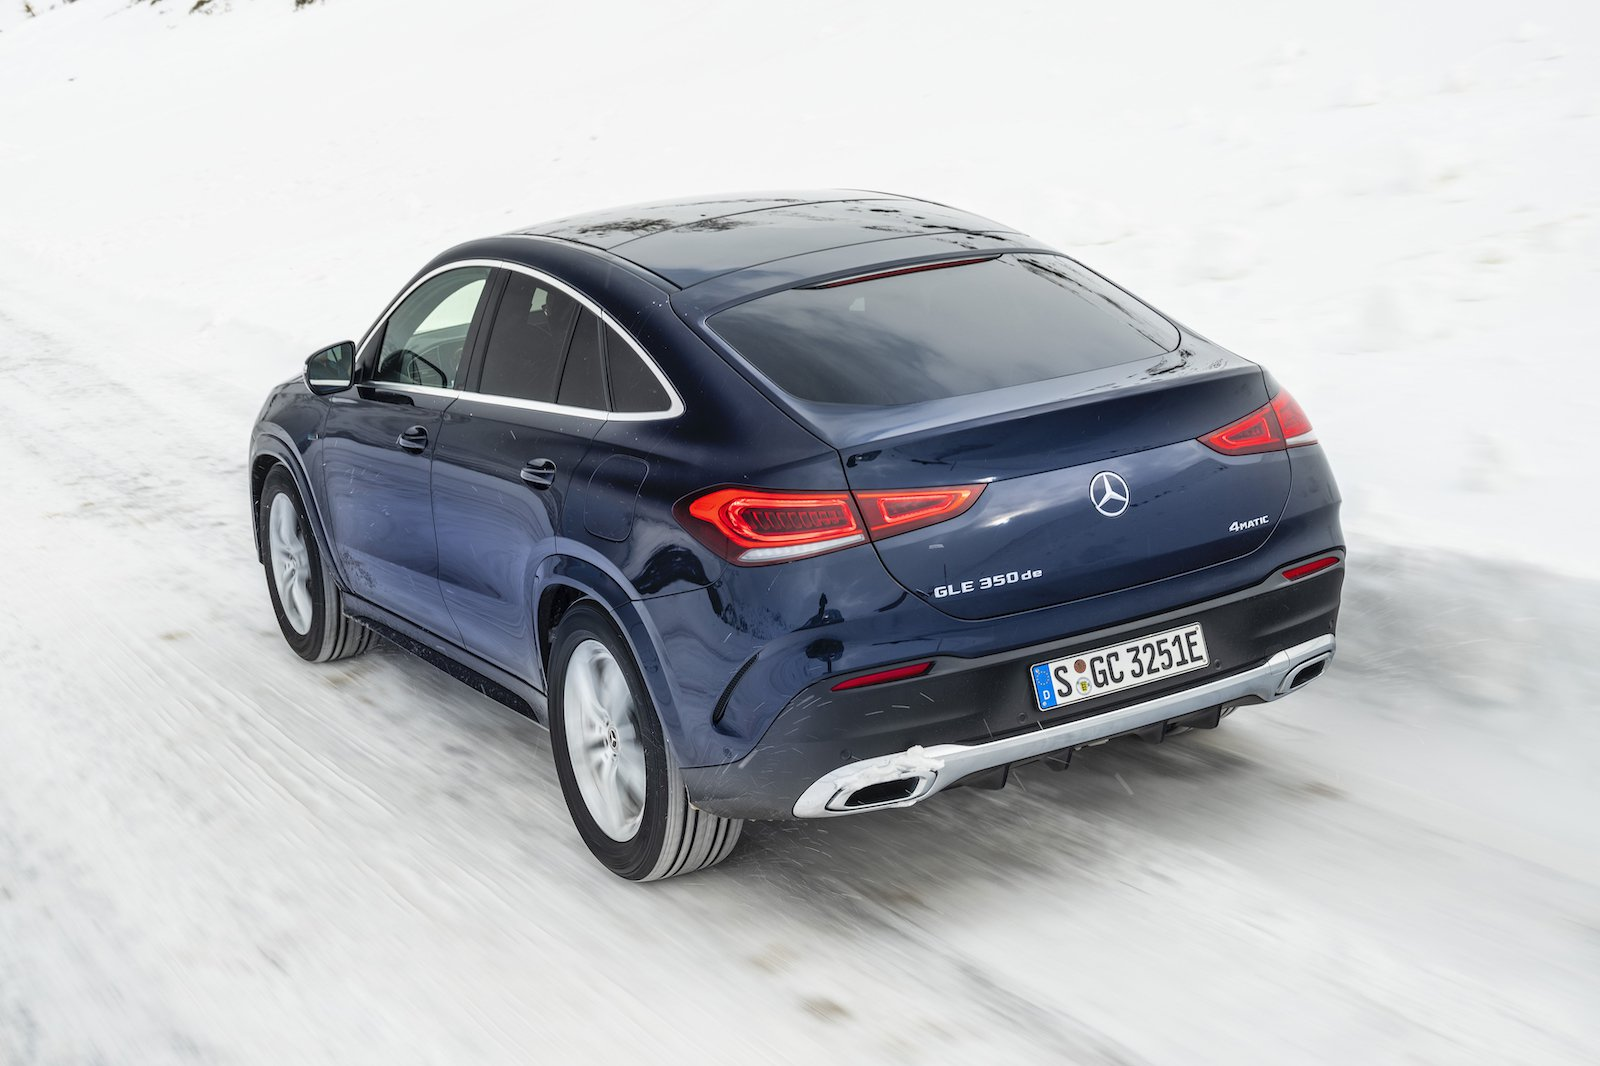 2020 Mercedes GLE Coupe rear